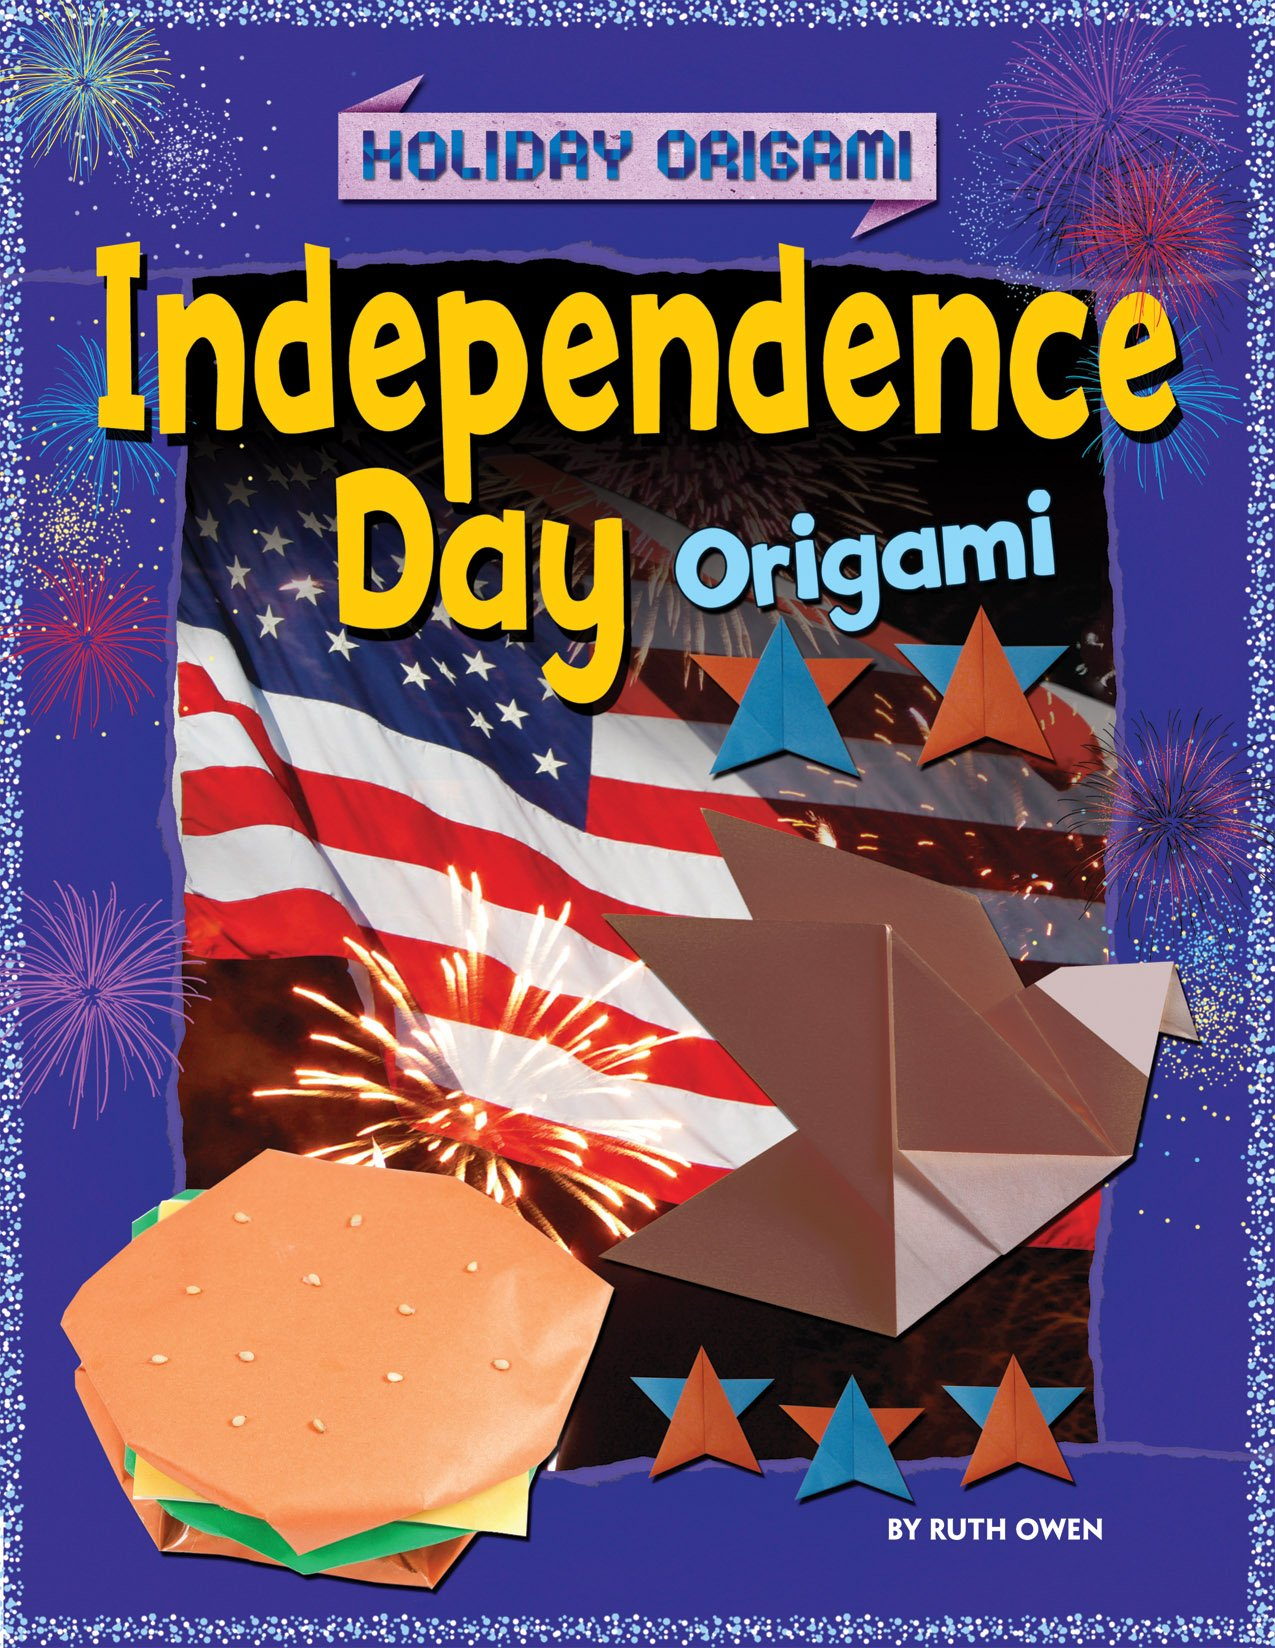 Independence Day Origami (Holiday Origami)